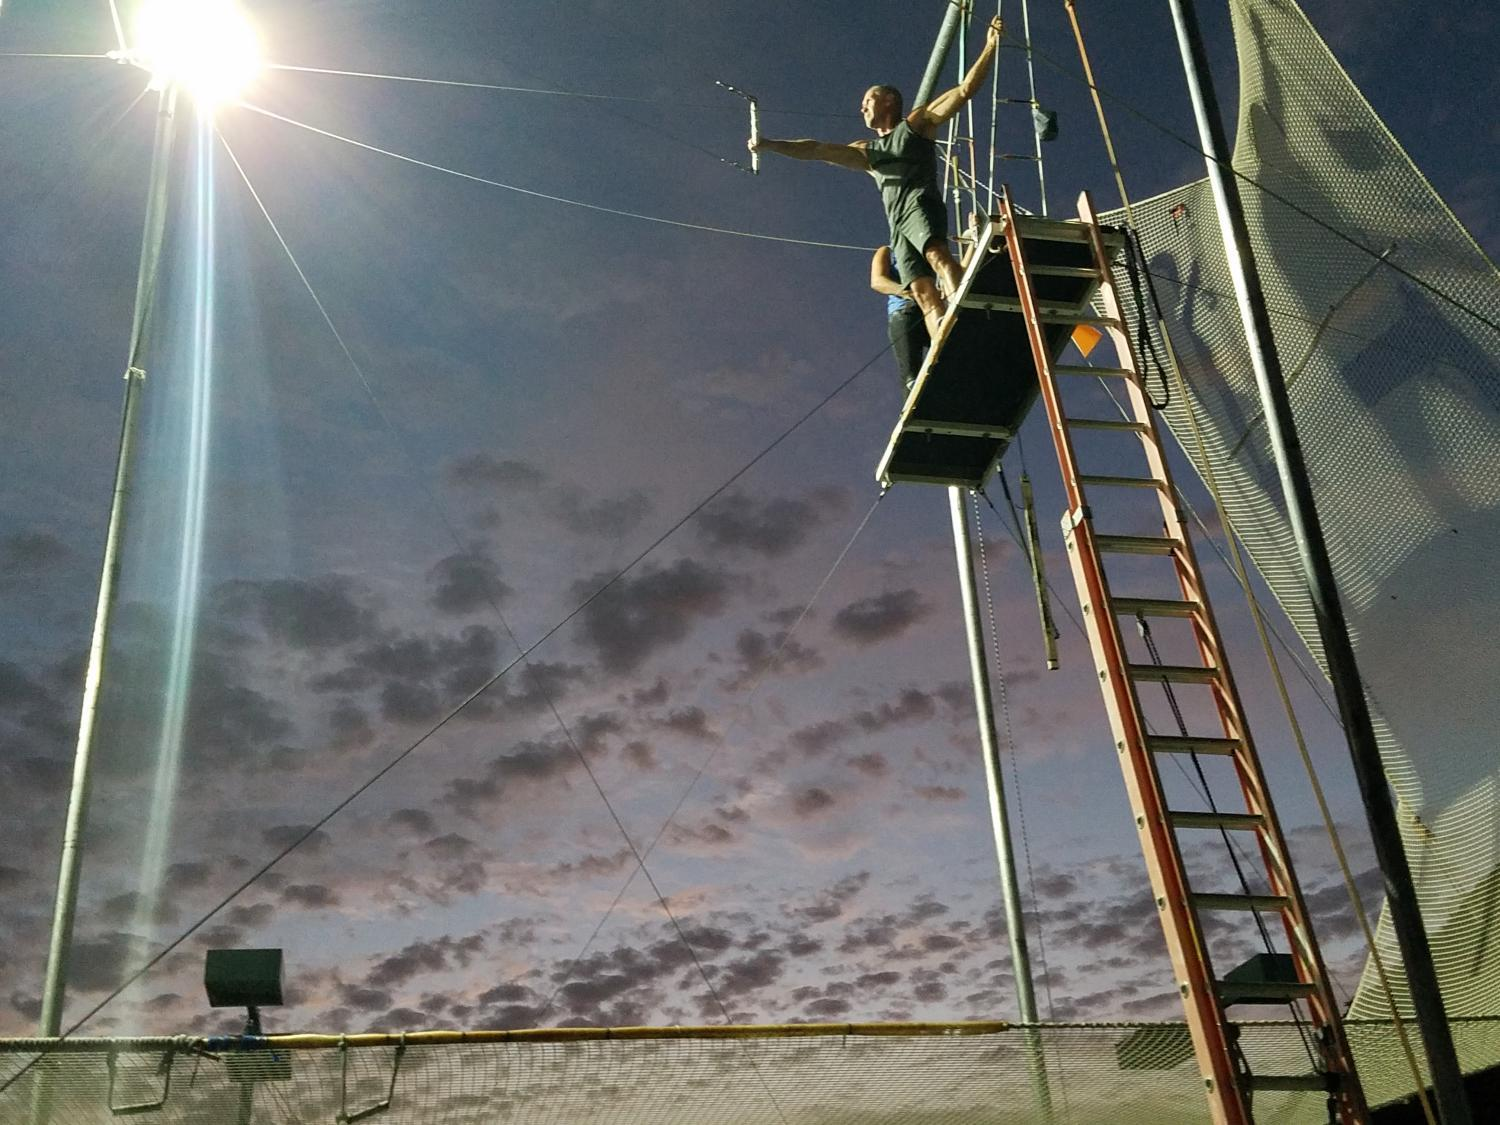 a person getting ready to trapeze